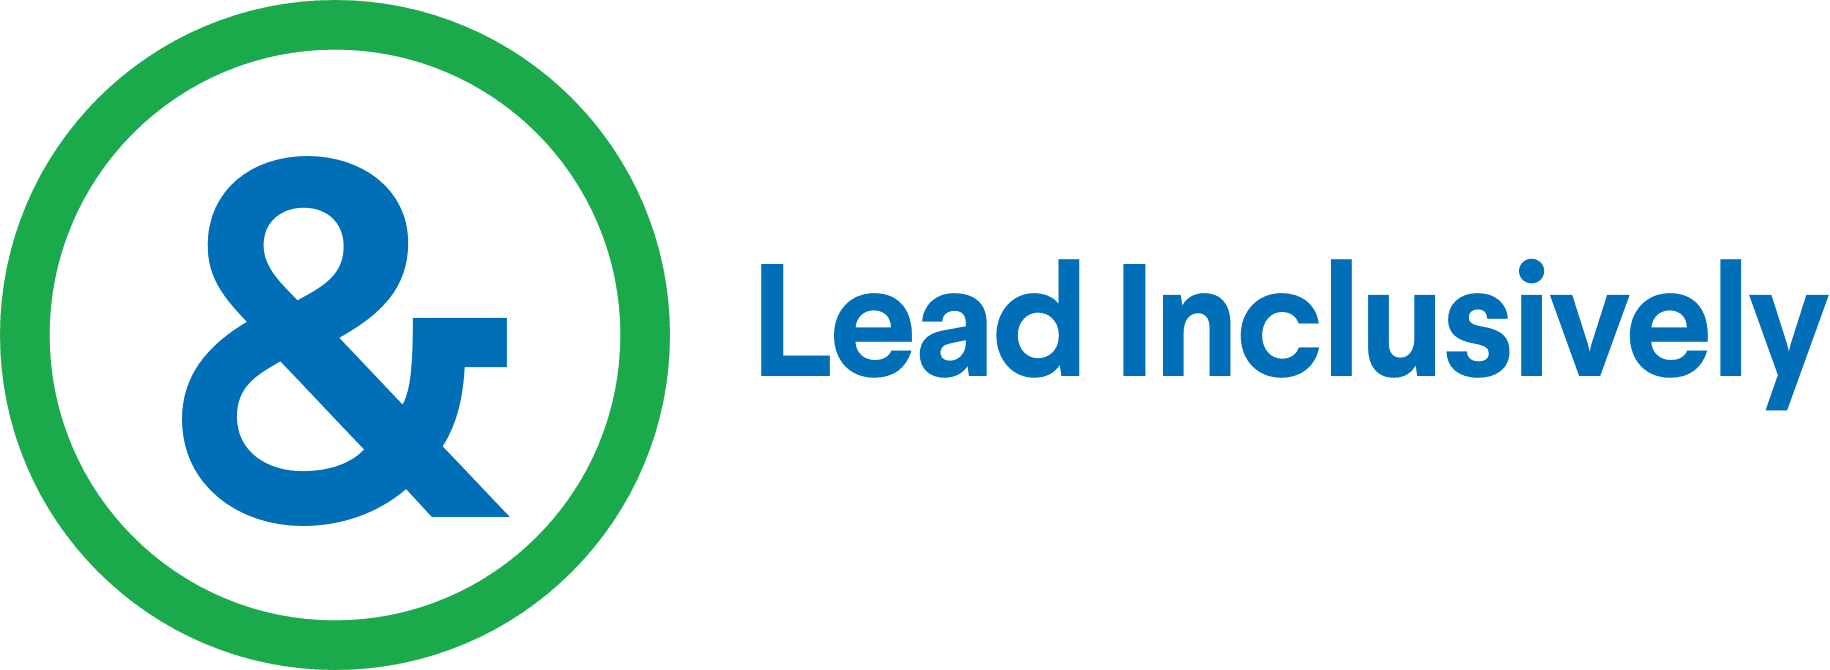 Lead inclusively logo